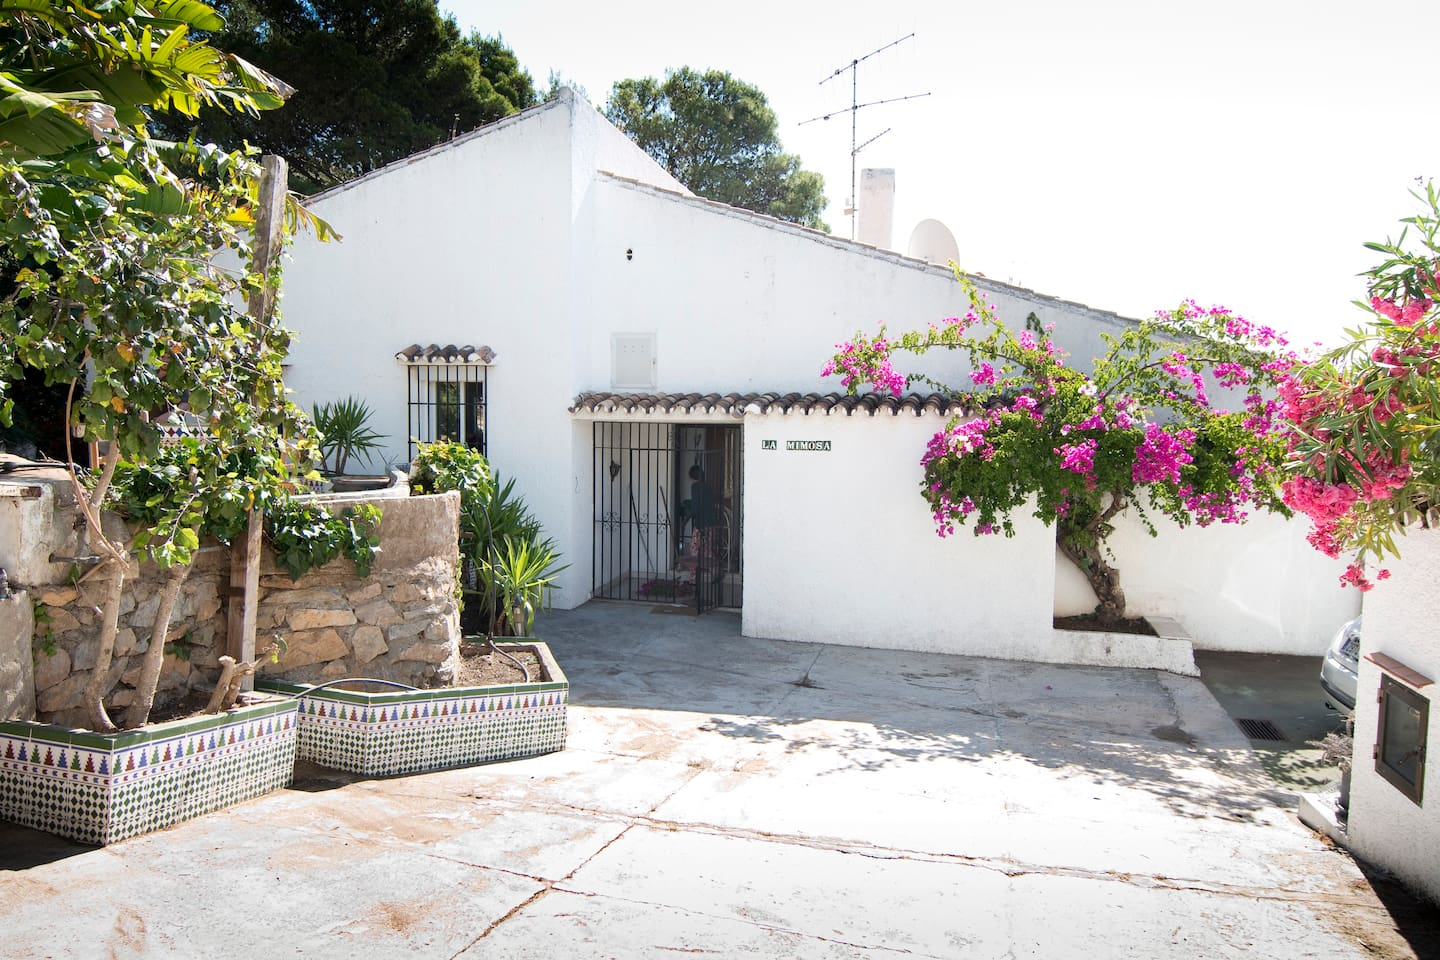 The house is located within a private compound that has a total of 3 houses, there is a gate surrounding the houses and space to park a car.